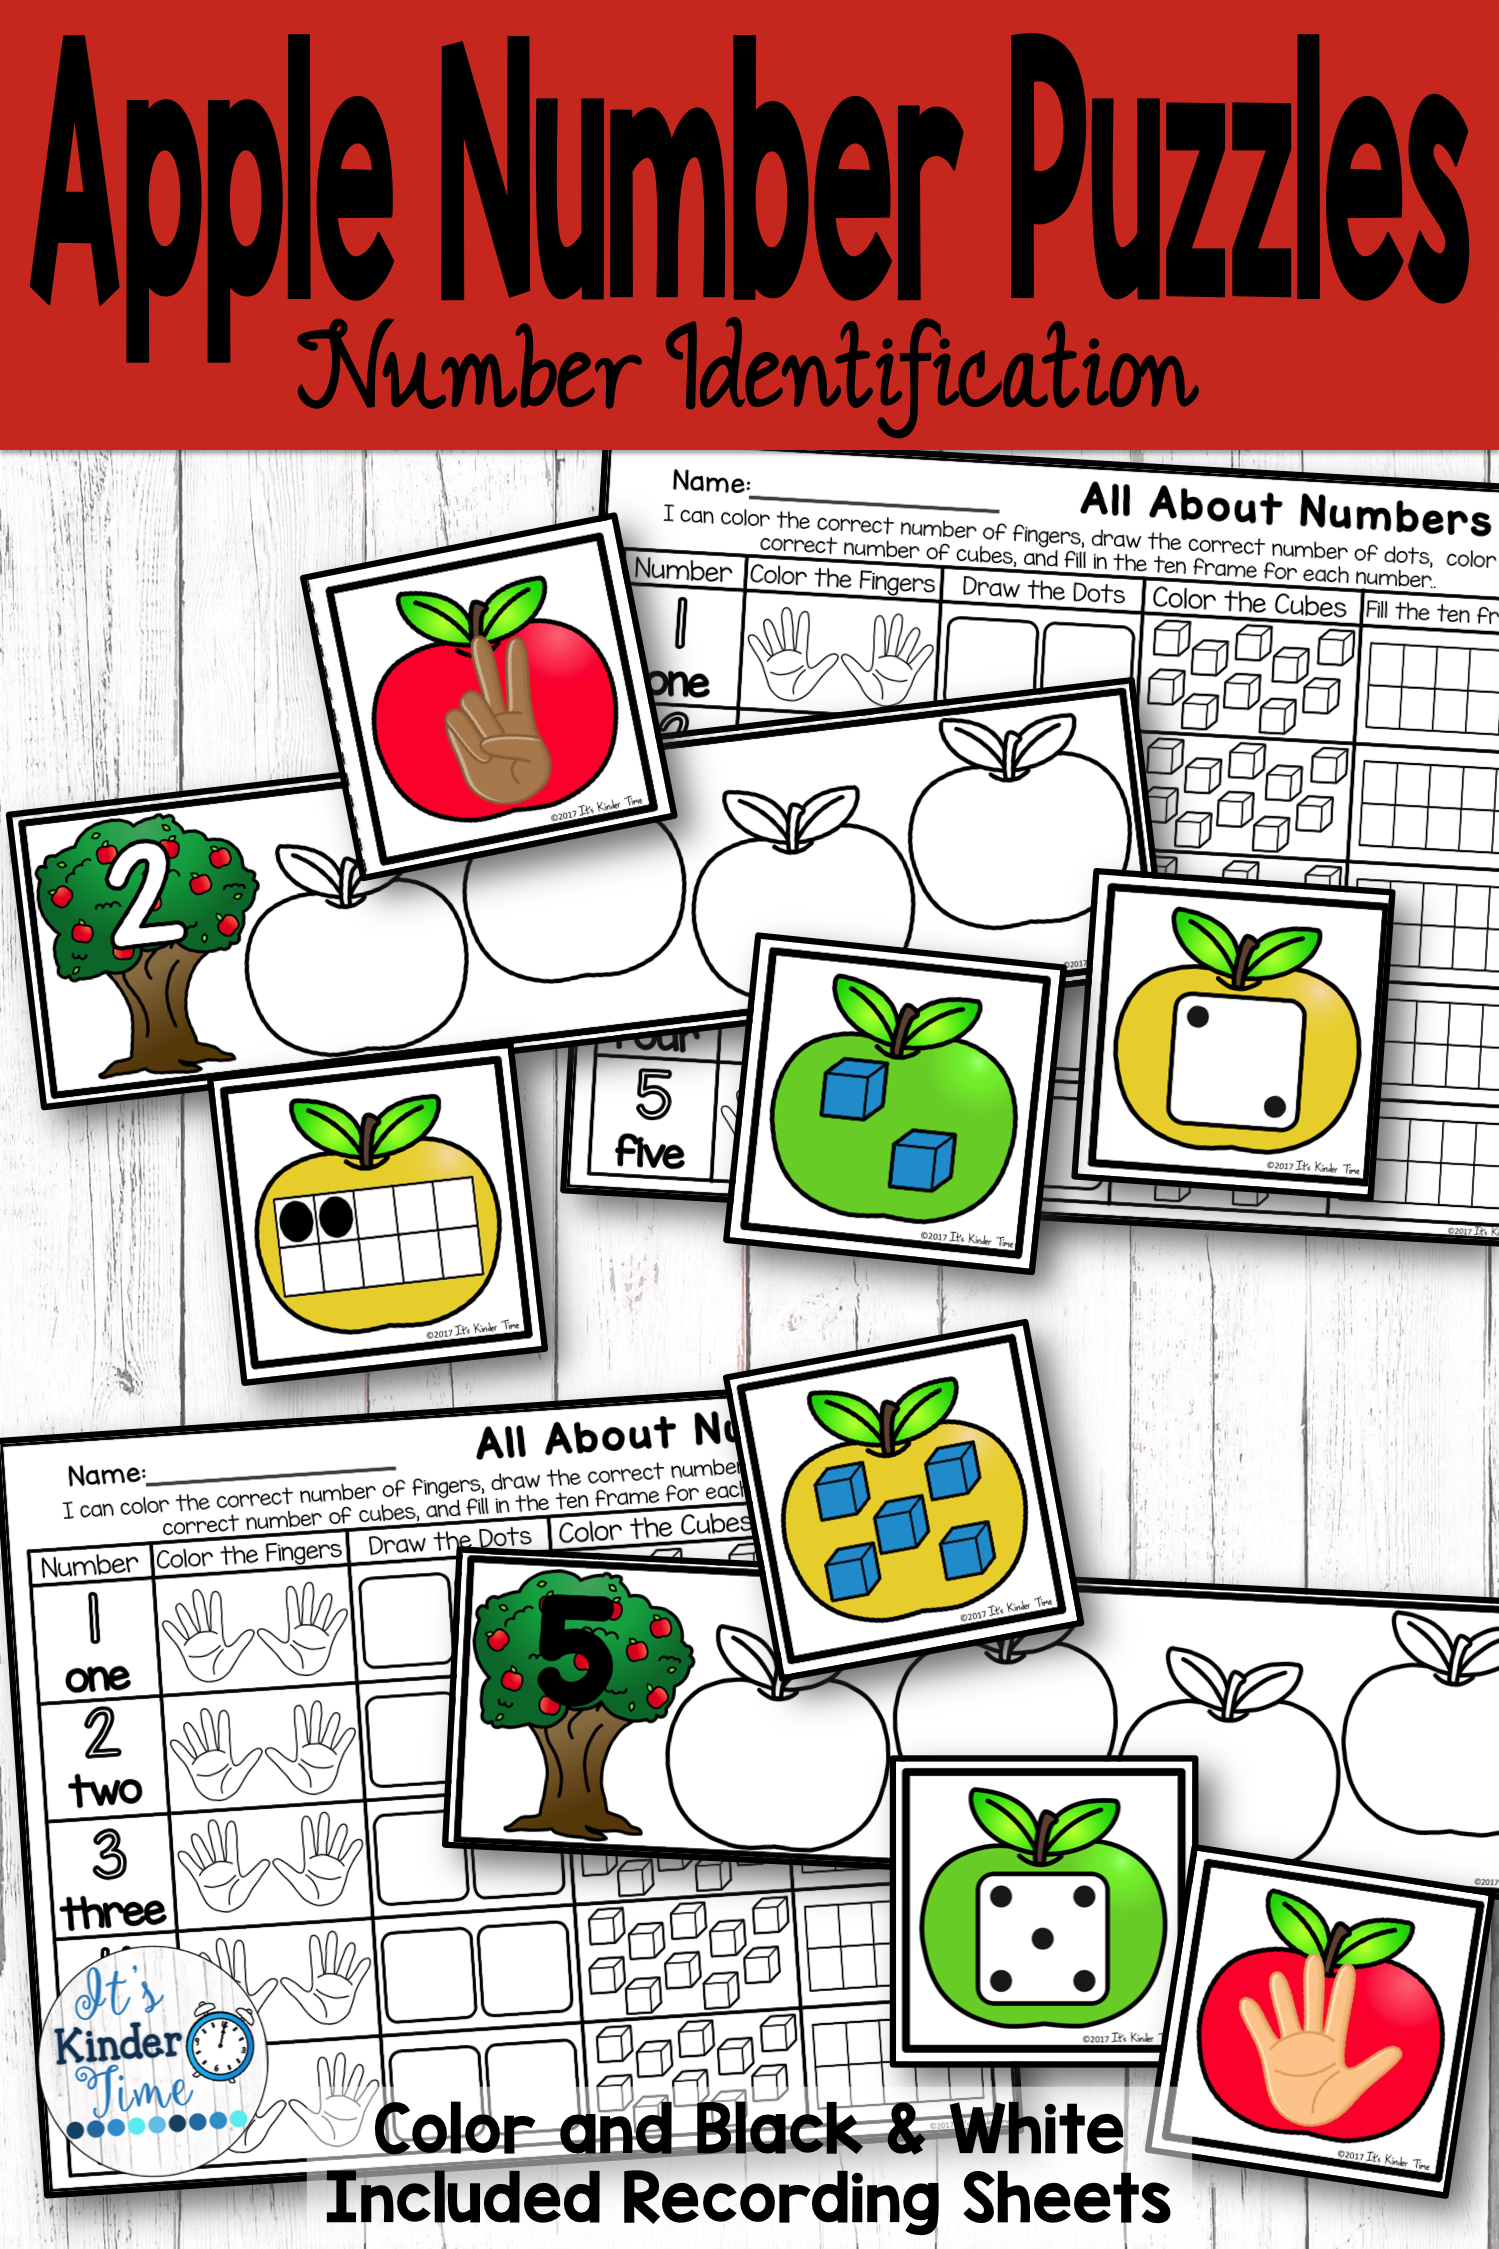 Identifying Numbers And Matching A Given Set To The Correct Number Math Activities Homeschool Programs Math Resources [ 2249 x 1499 Pixel ]